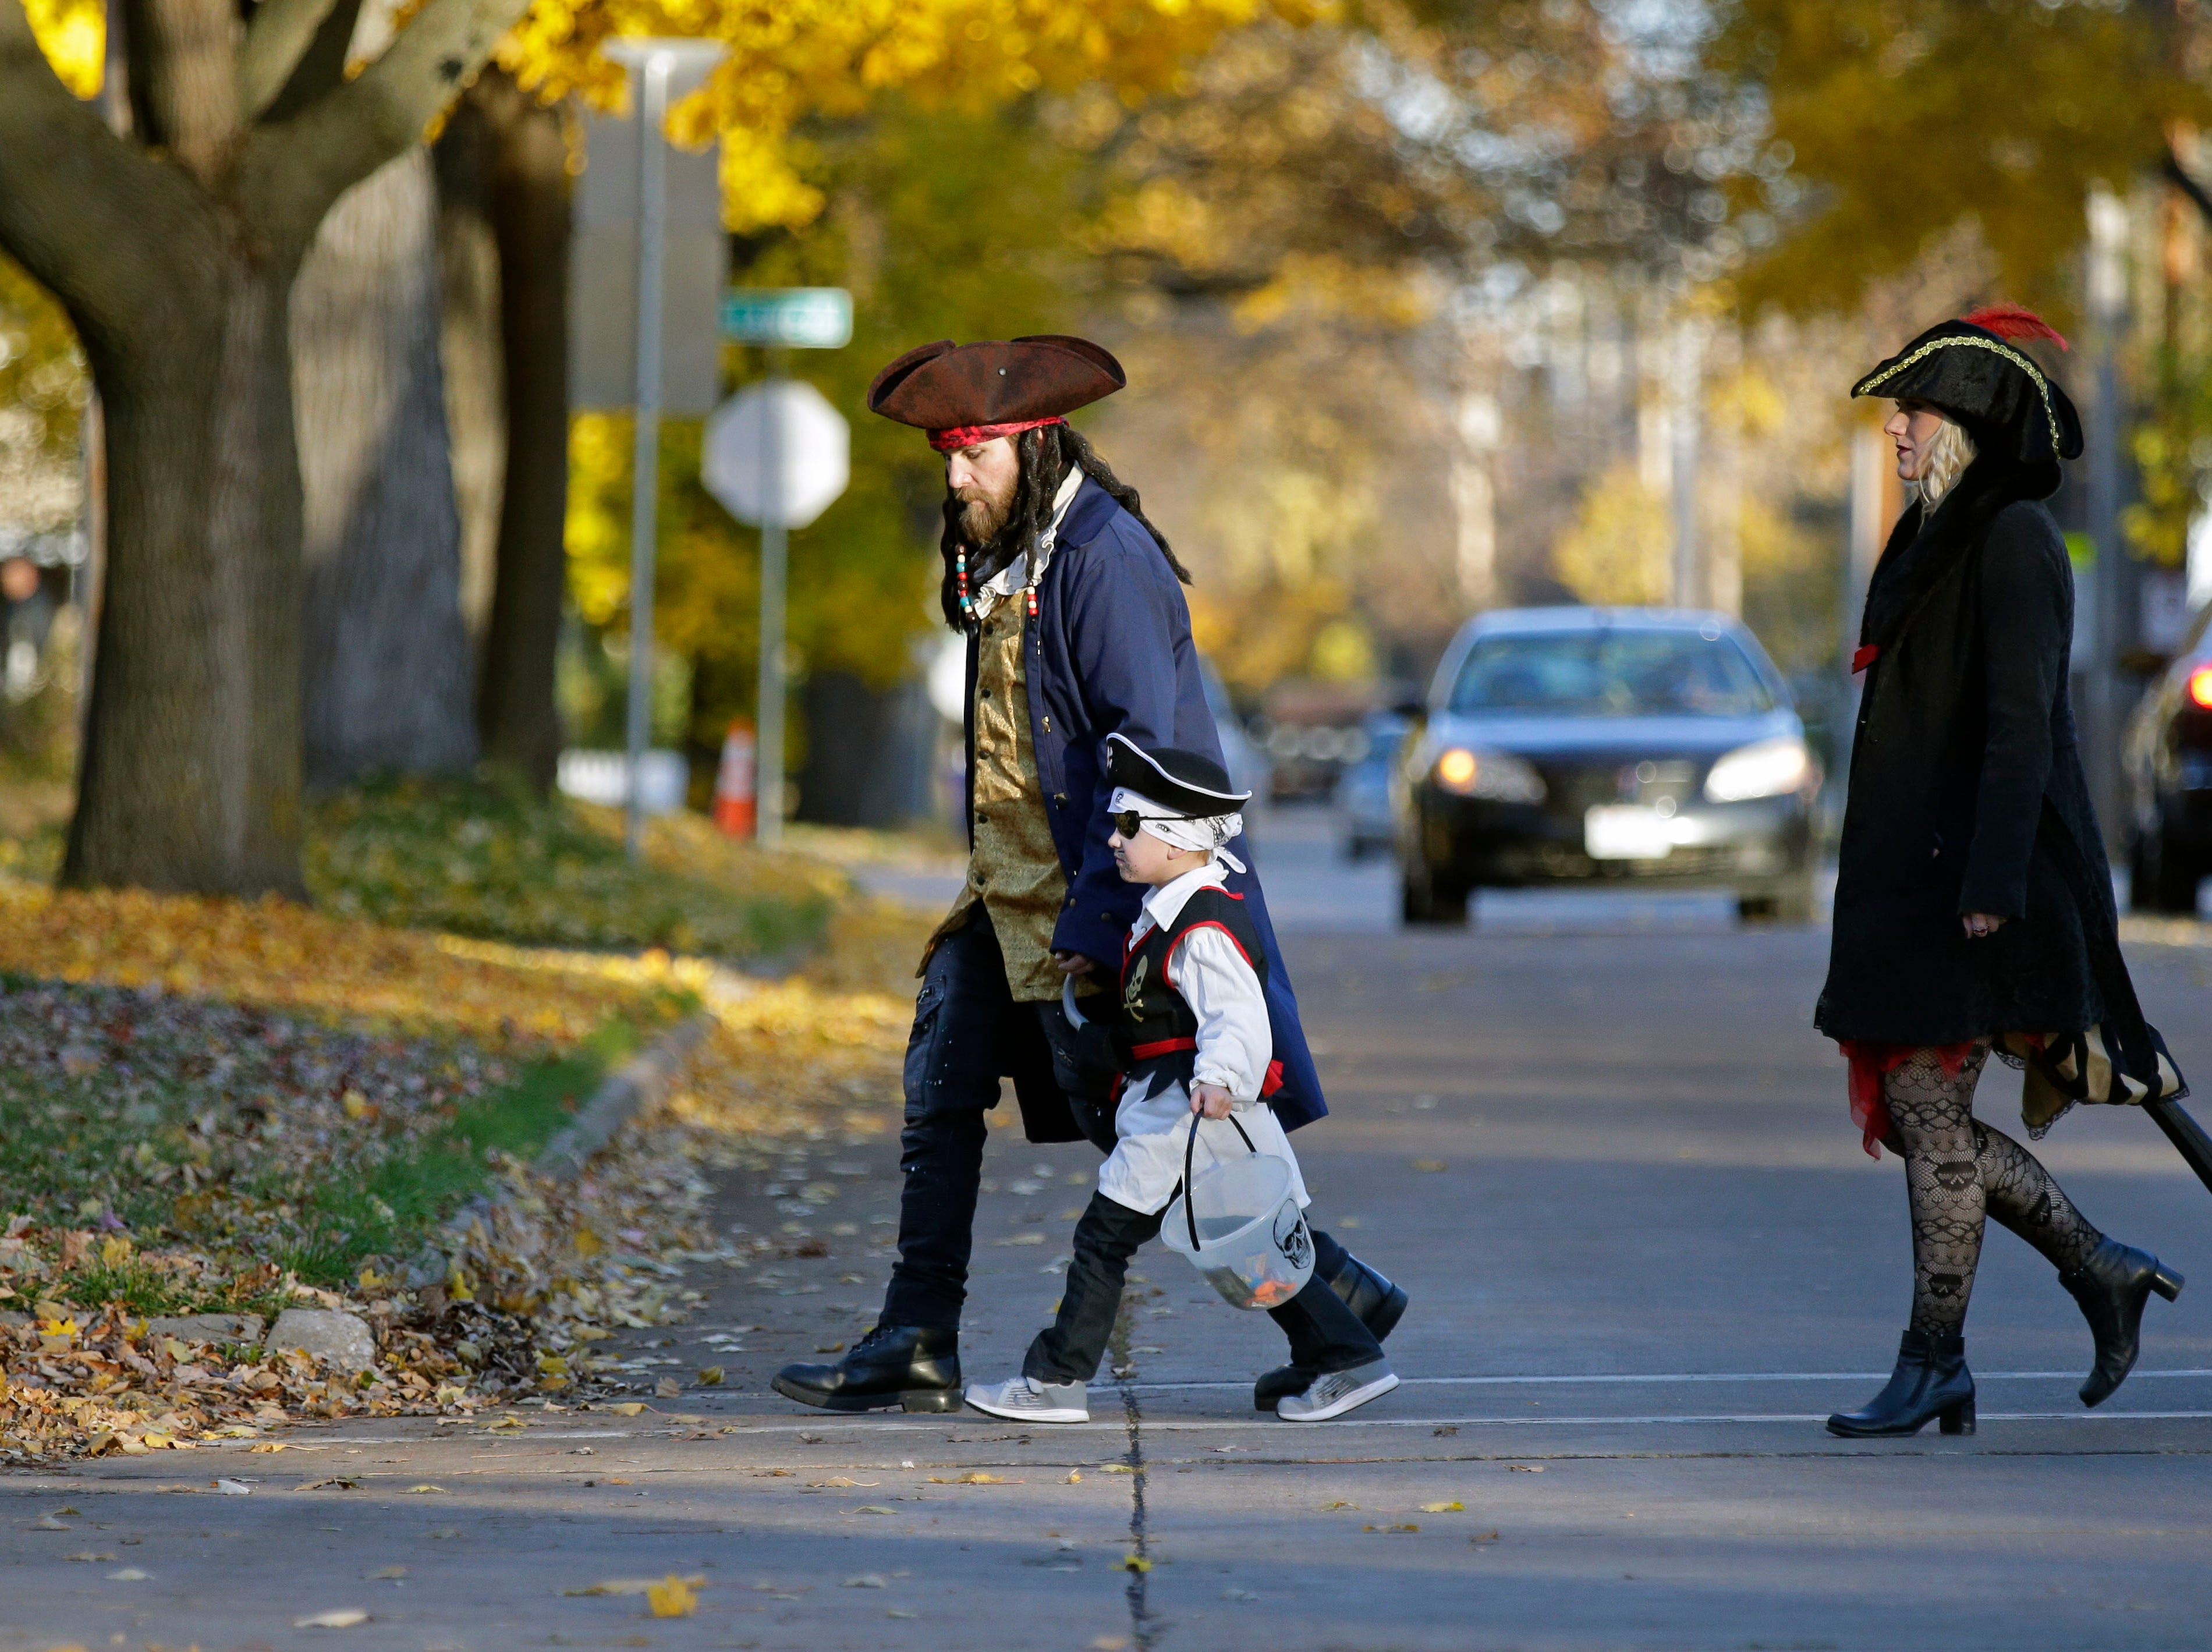 Pirate crew Michael and Chrissie Stevens trick or treat with Jaxson on Halloween Wednesday, October 31, 2018, in Appleton, Wis.